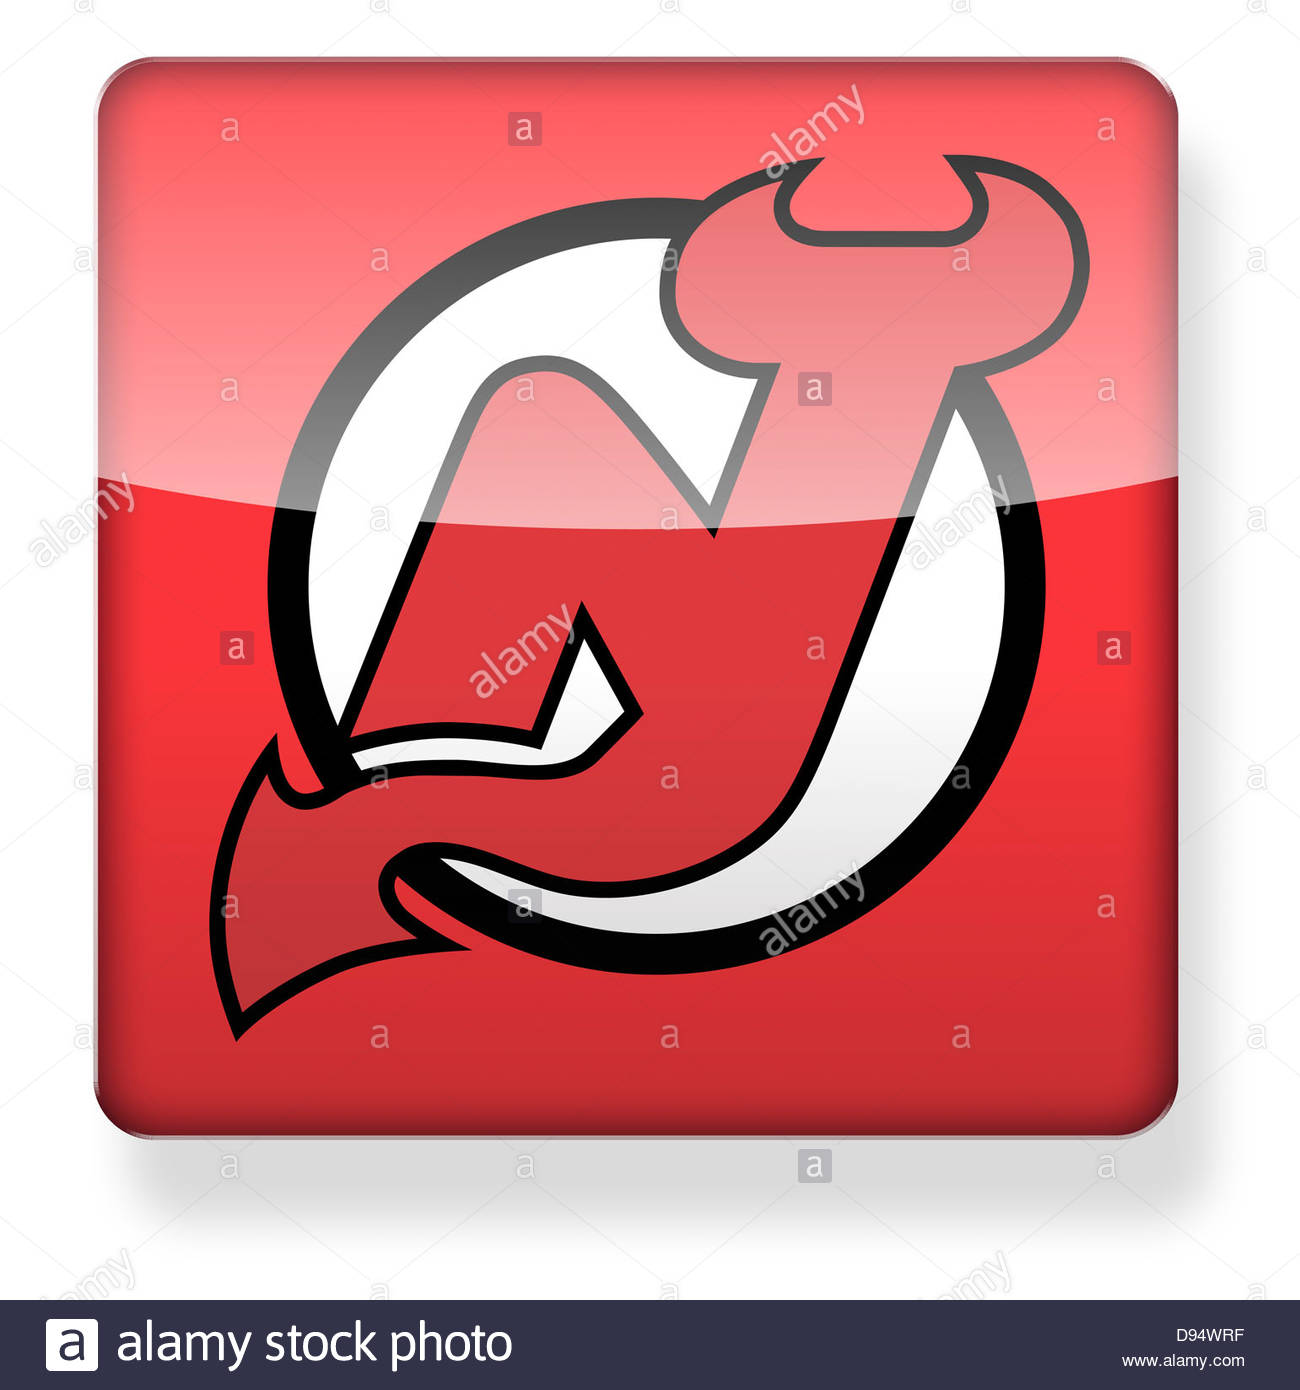 save off da59c d0573 New Jersey Devils hockey team logo as an app icon. Clipping ...